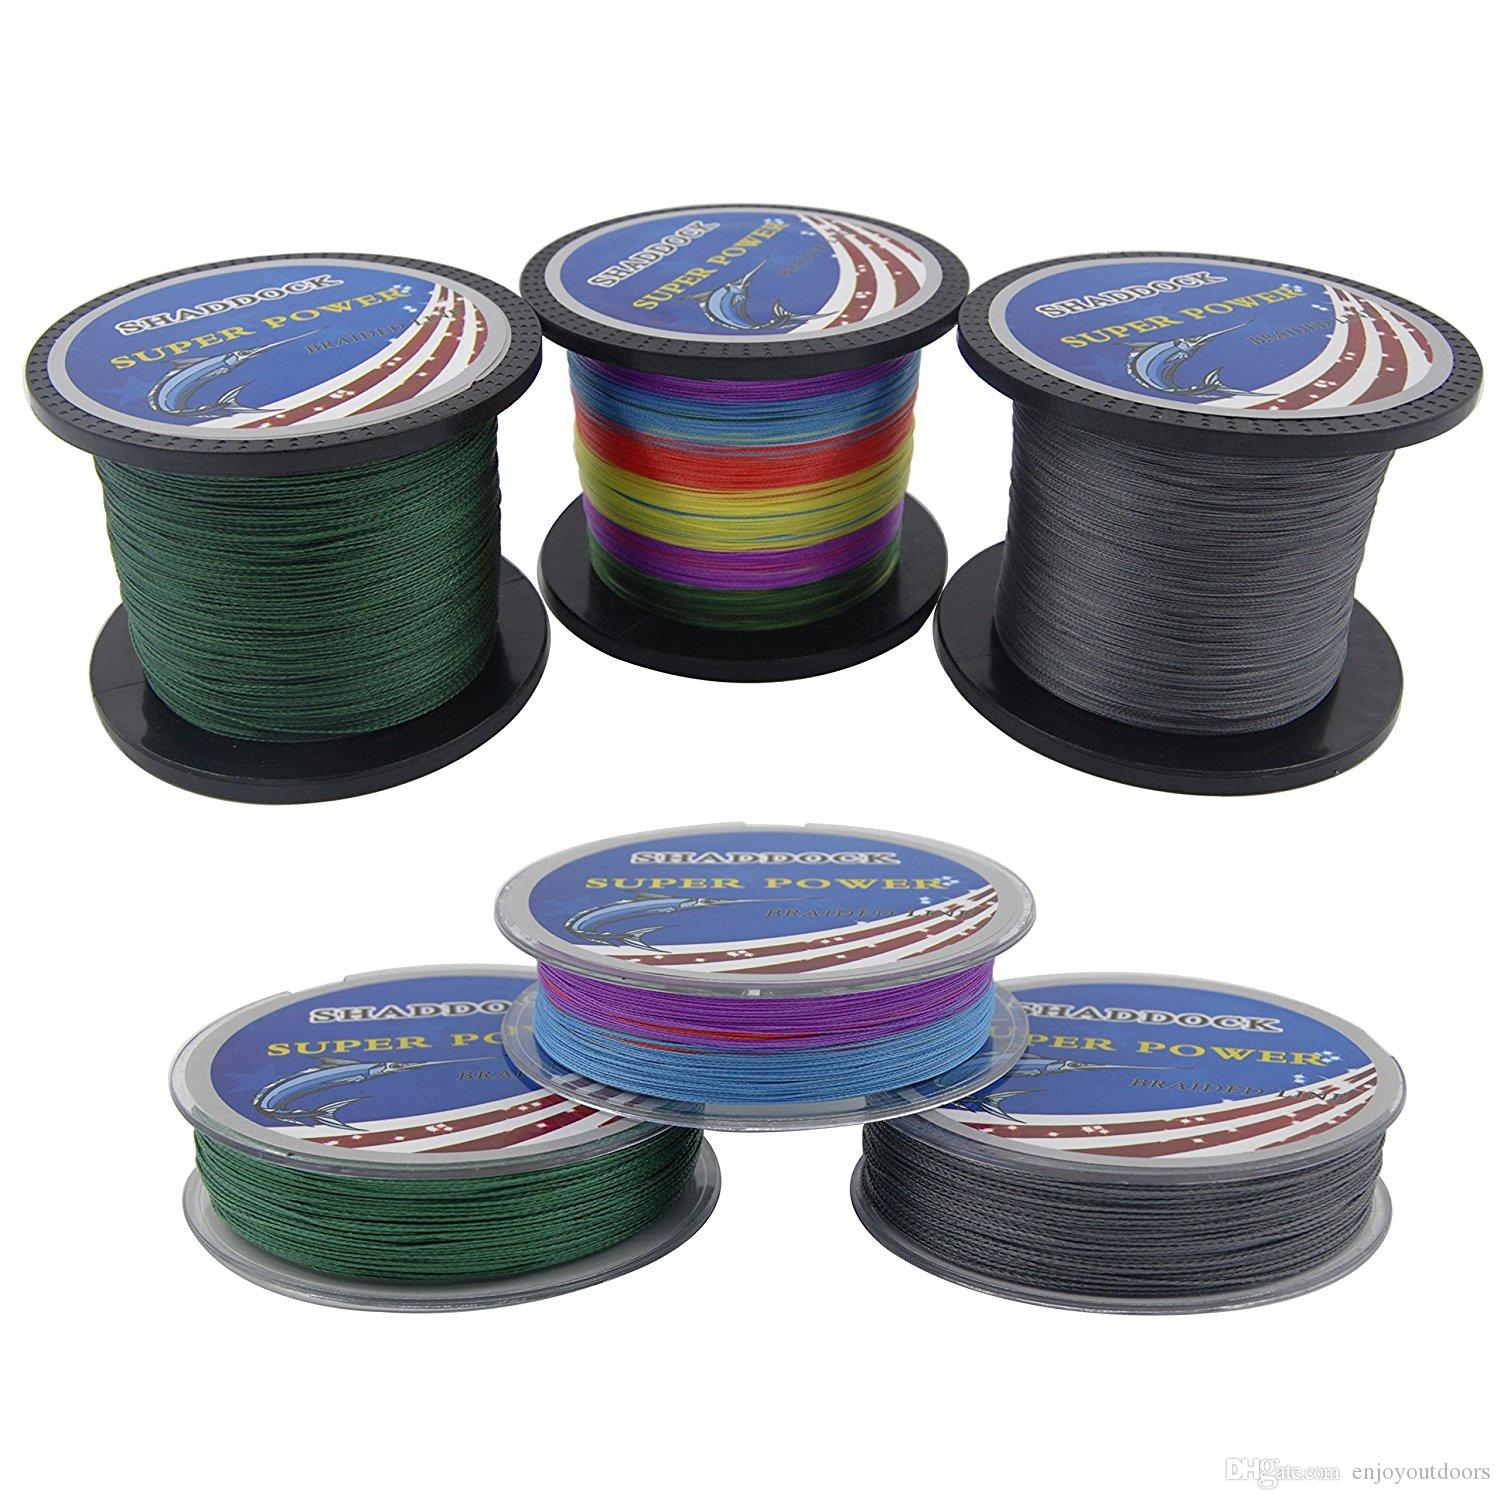 Super Strong 100% PE Braided Fishing Line 100M 300M 500M 1000M Advanced High-strength Fishing Super line with 4-Strands